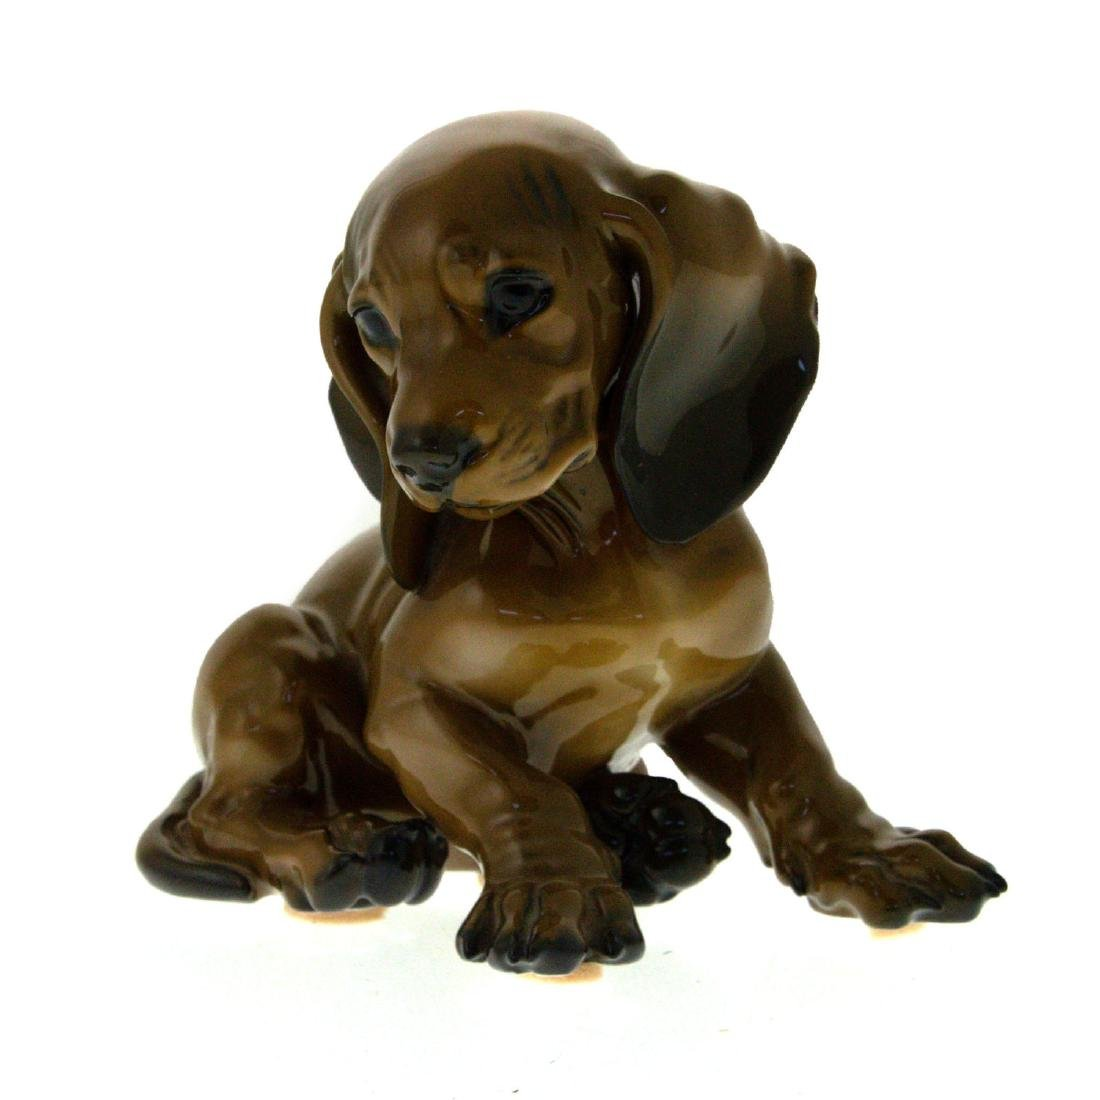 Rosenthal Porcelain Dog Figure.